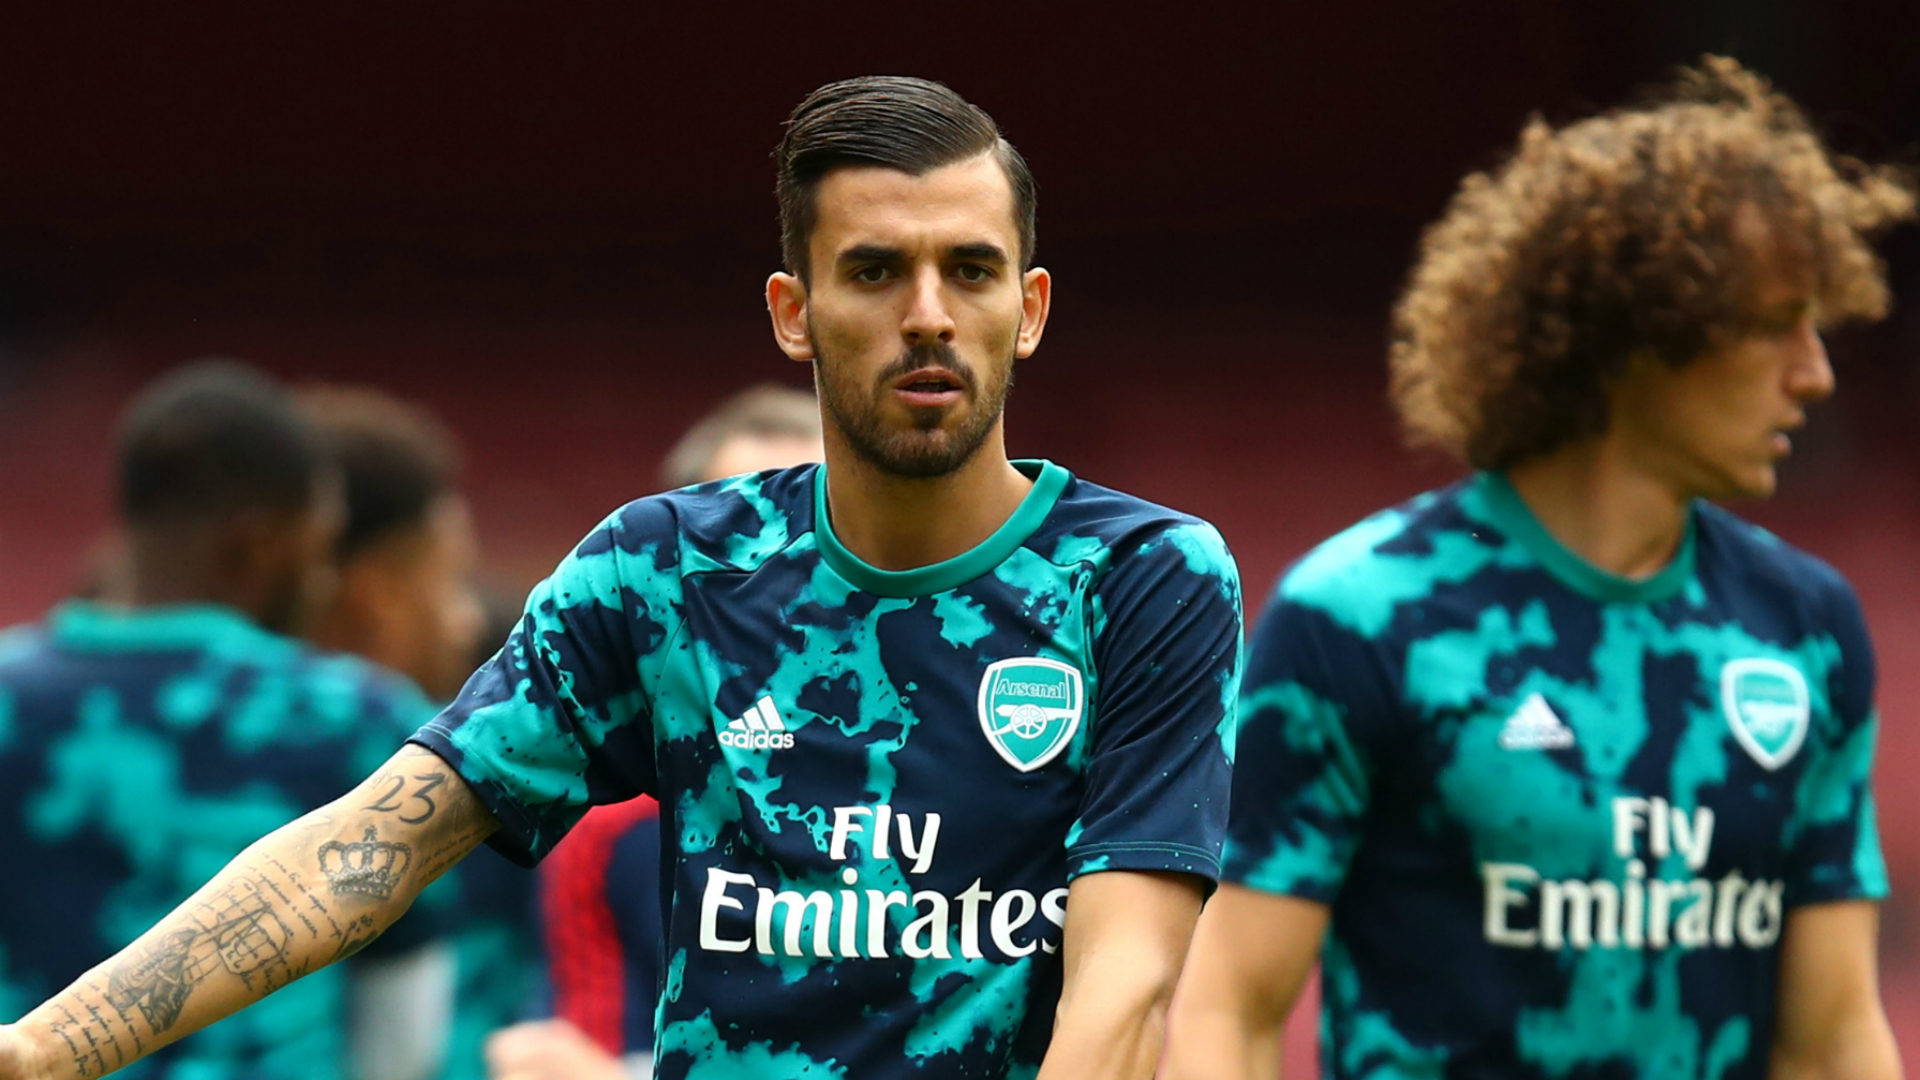 Arsenal newcomers lifted Emirates Stadium atmosphere – Emery